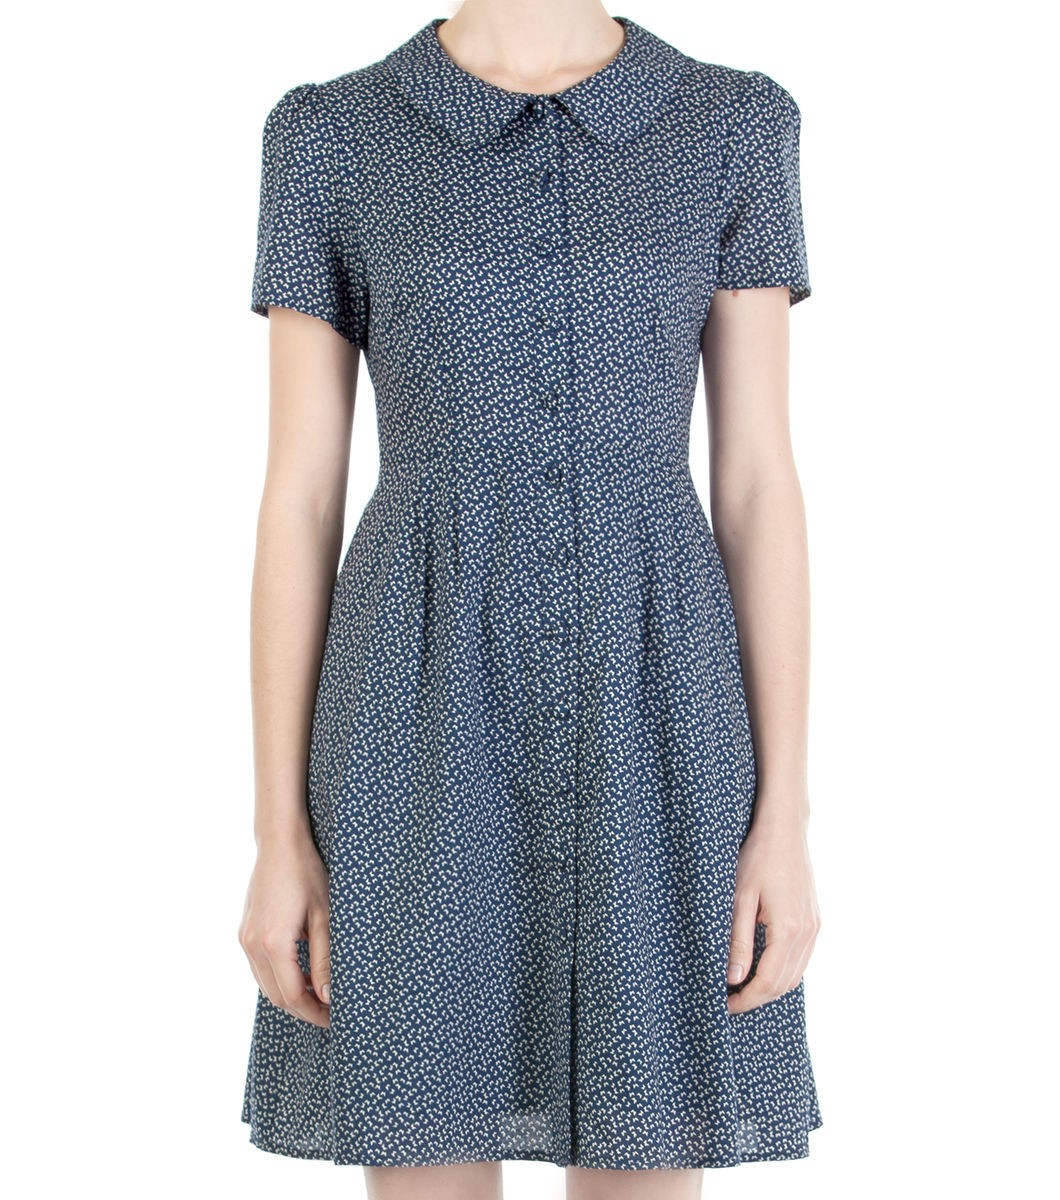 Bow Tea Dress